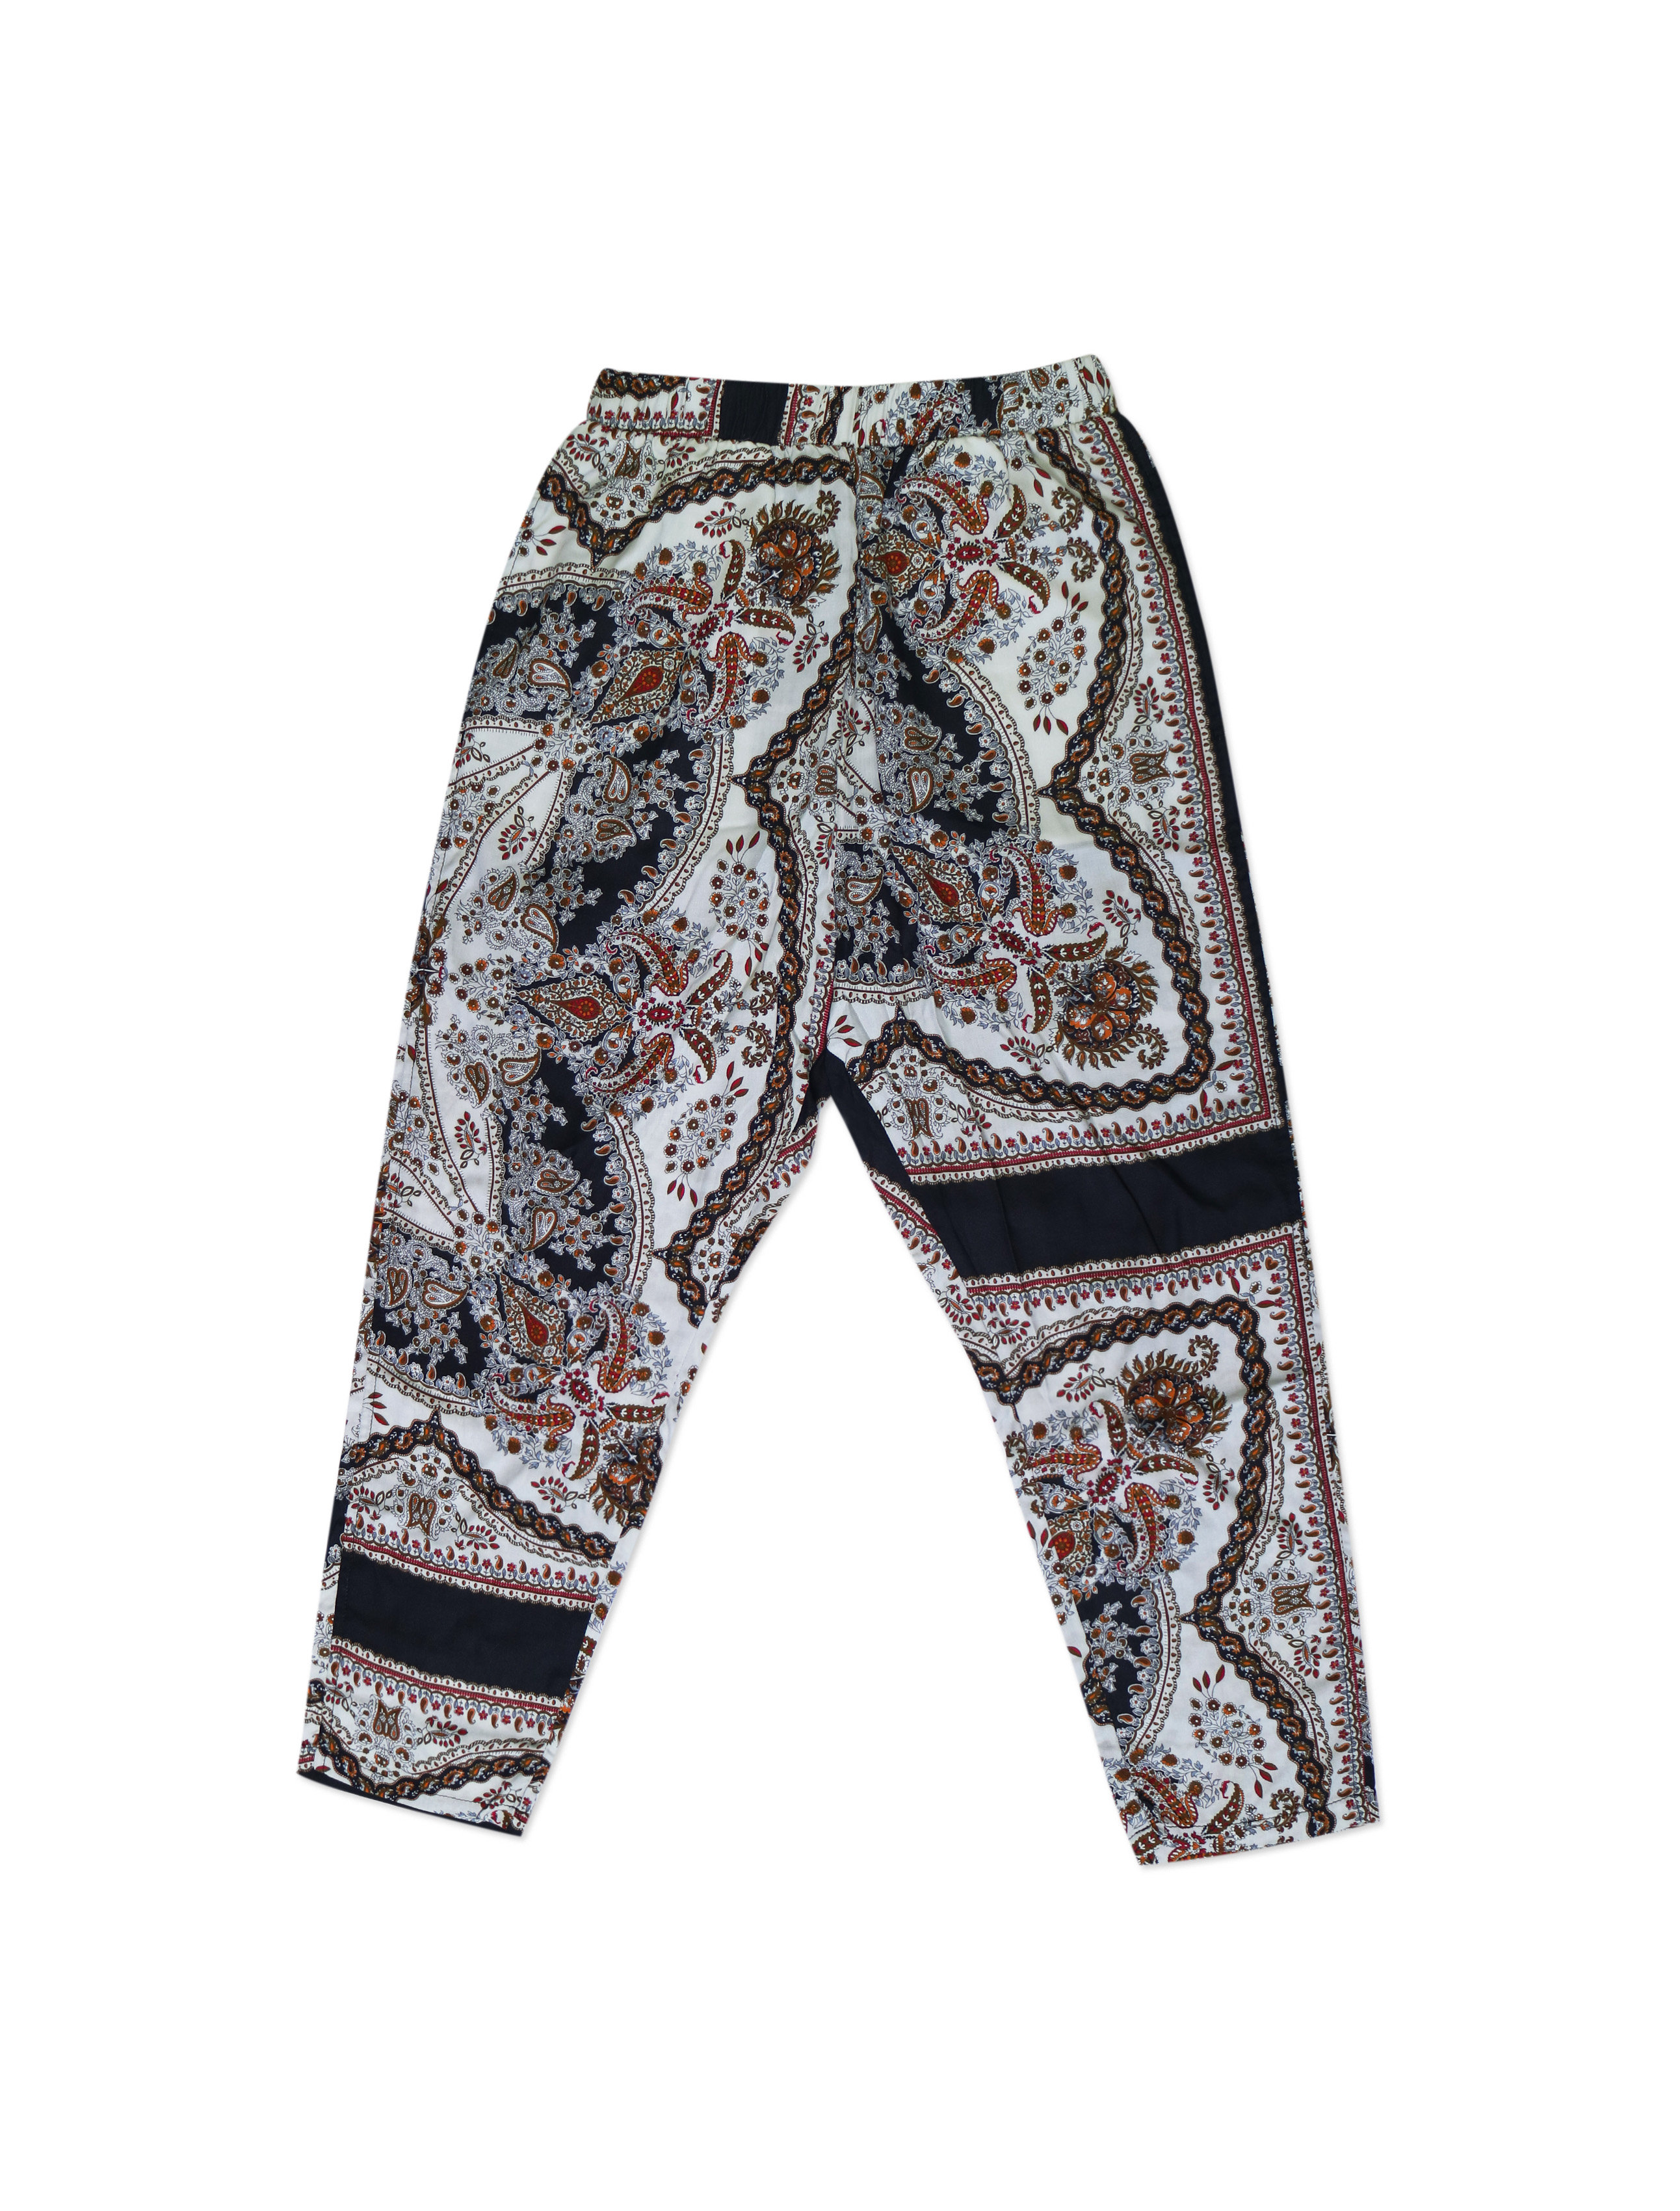 Easy Pant Persia | Wooden Store